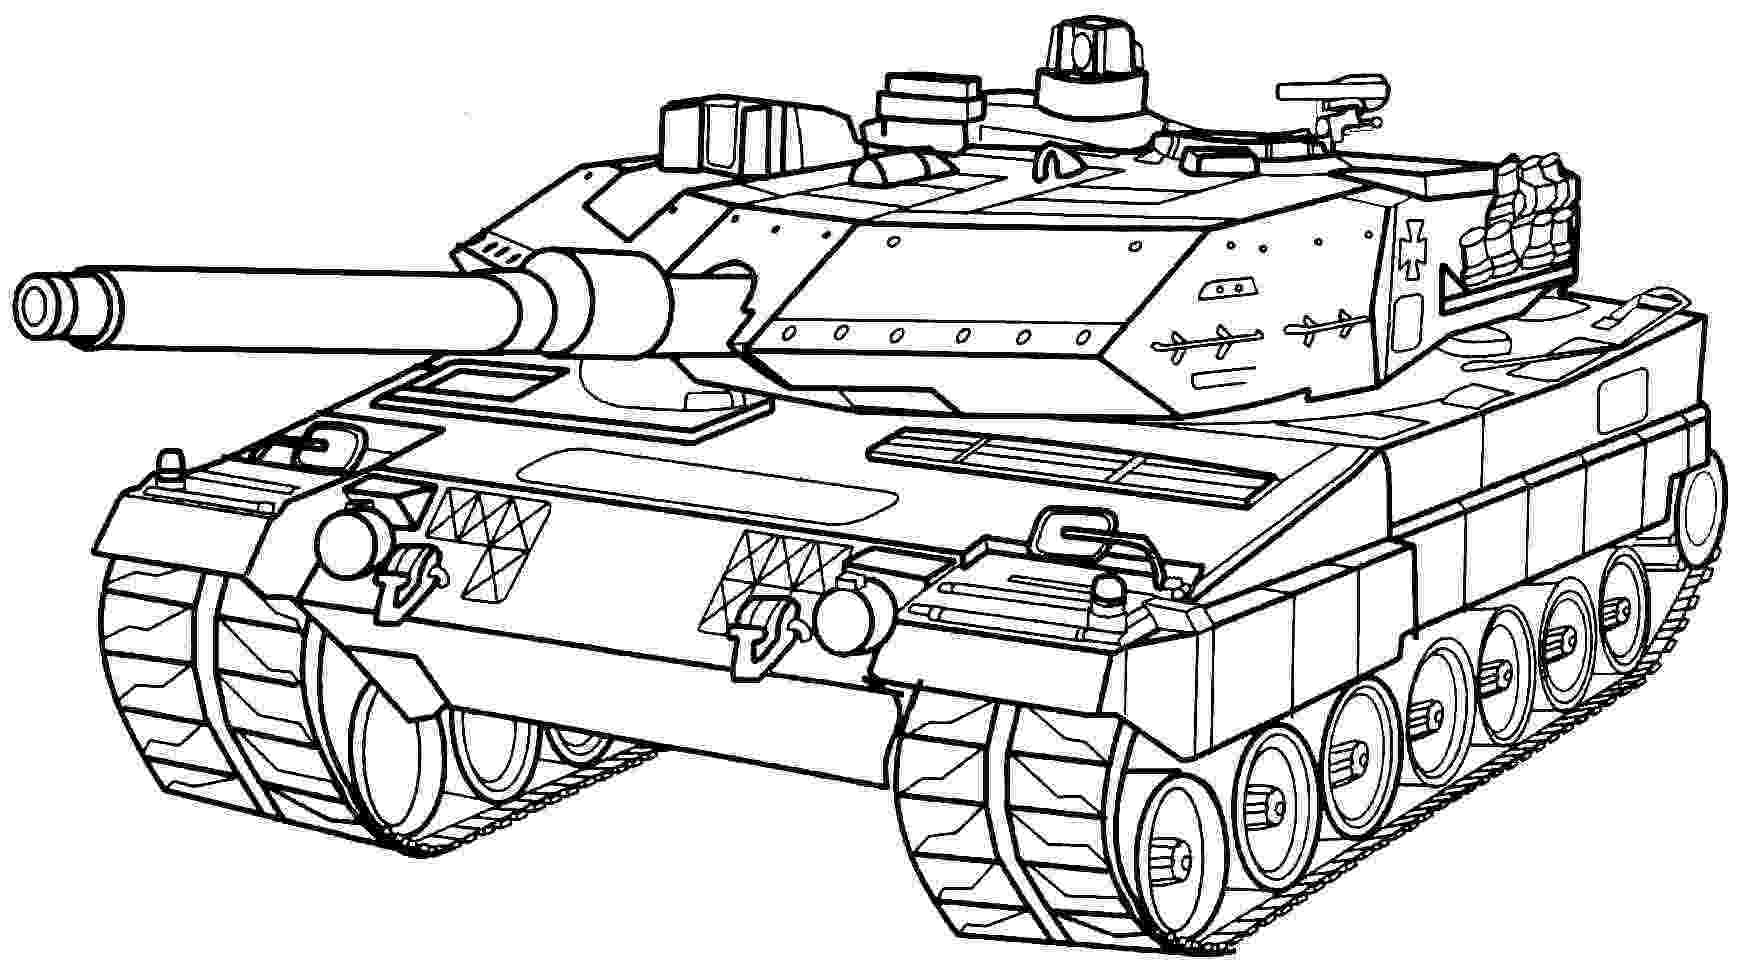 army colouring pictures army tanks coloring pages download and print for free pictures army colouring